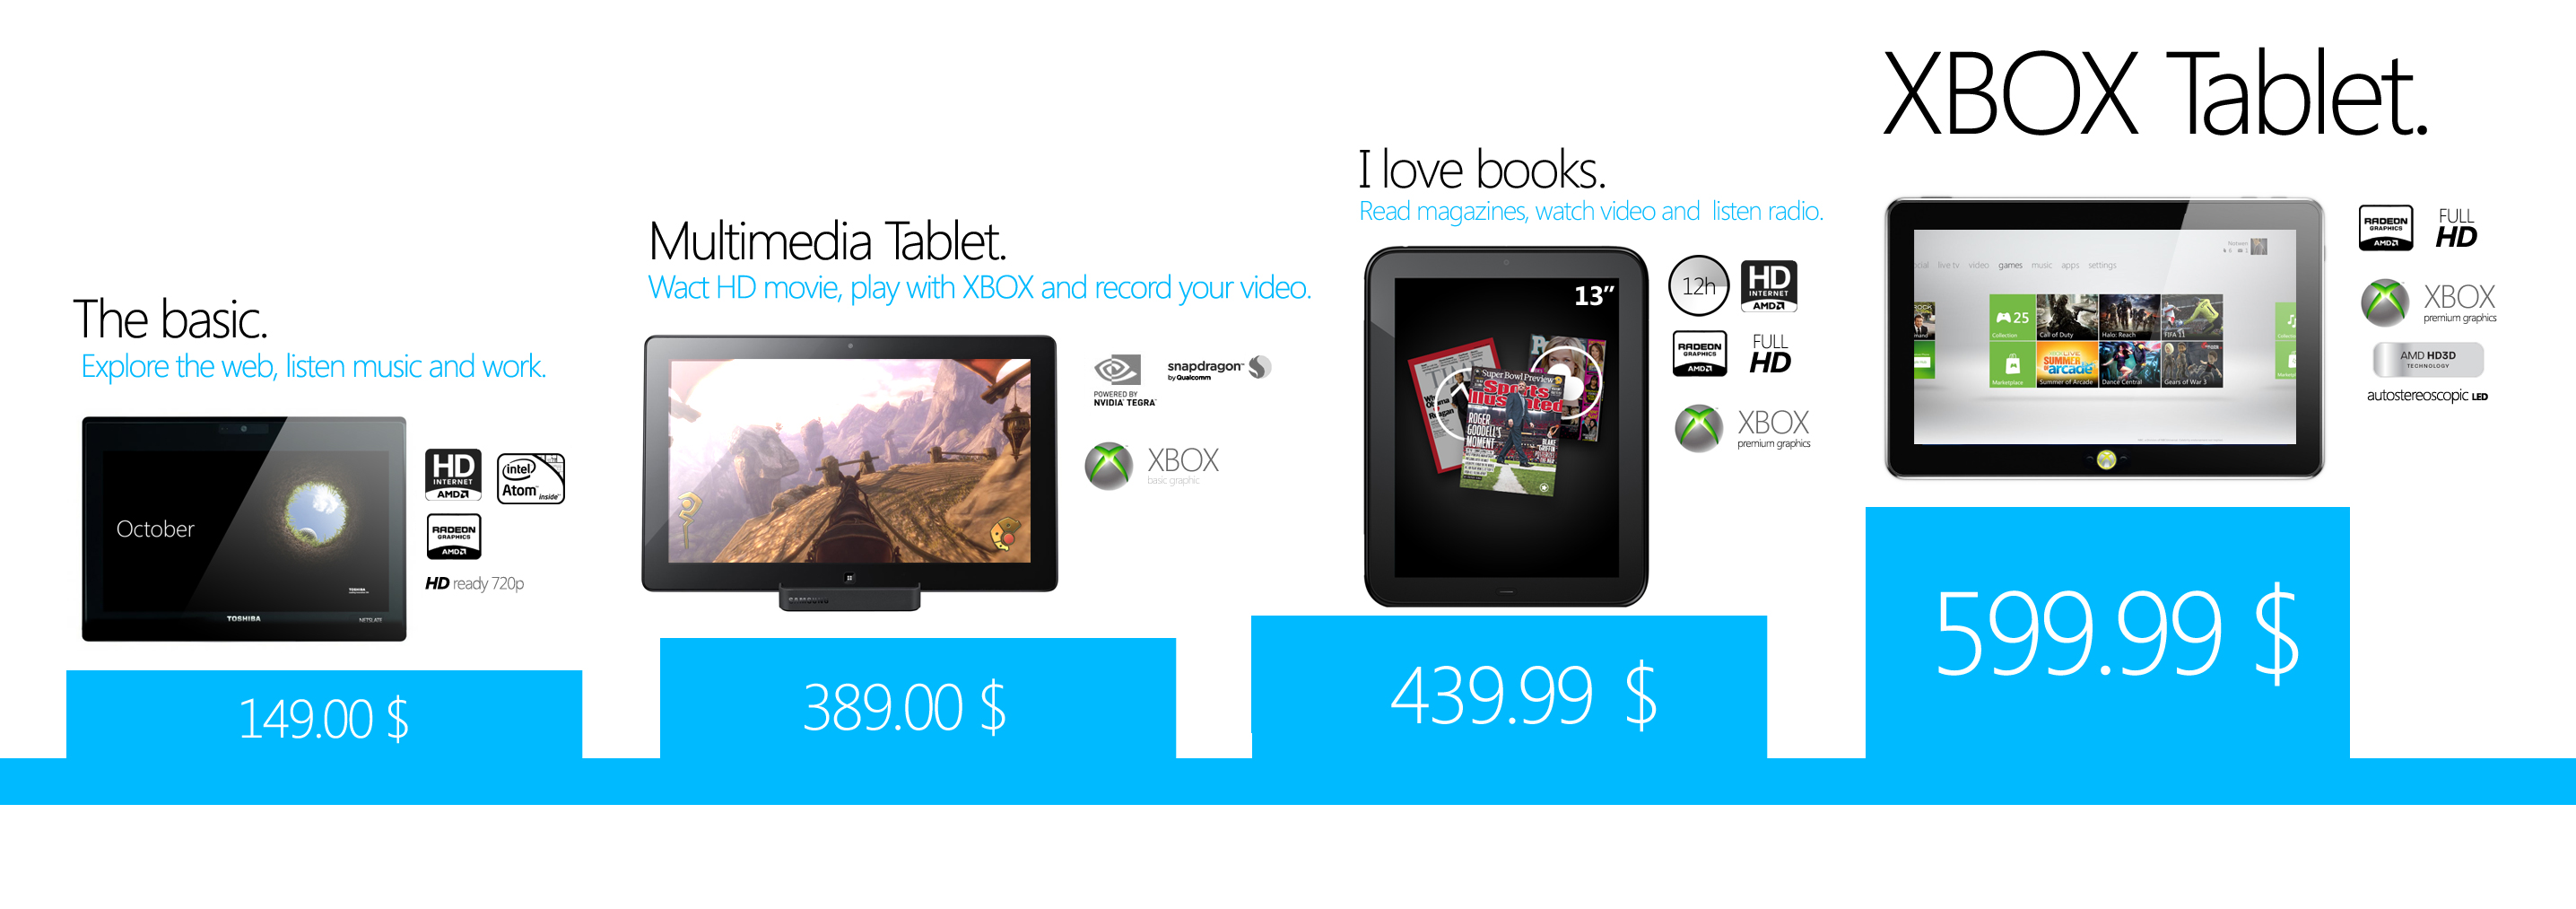 The World of Windows 8 Tablets by MetroUI